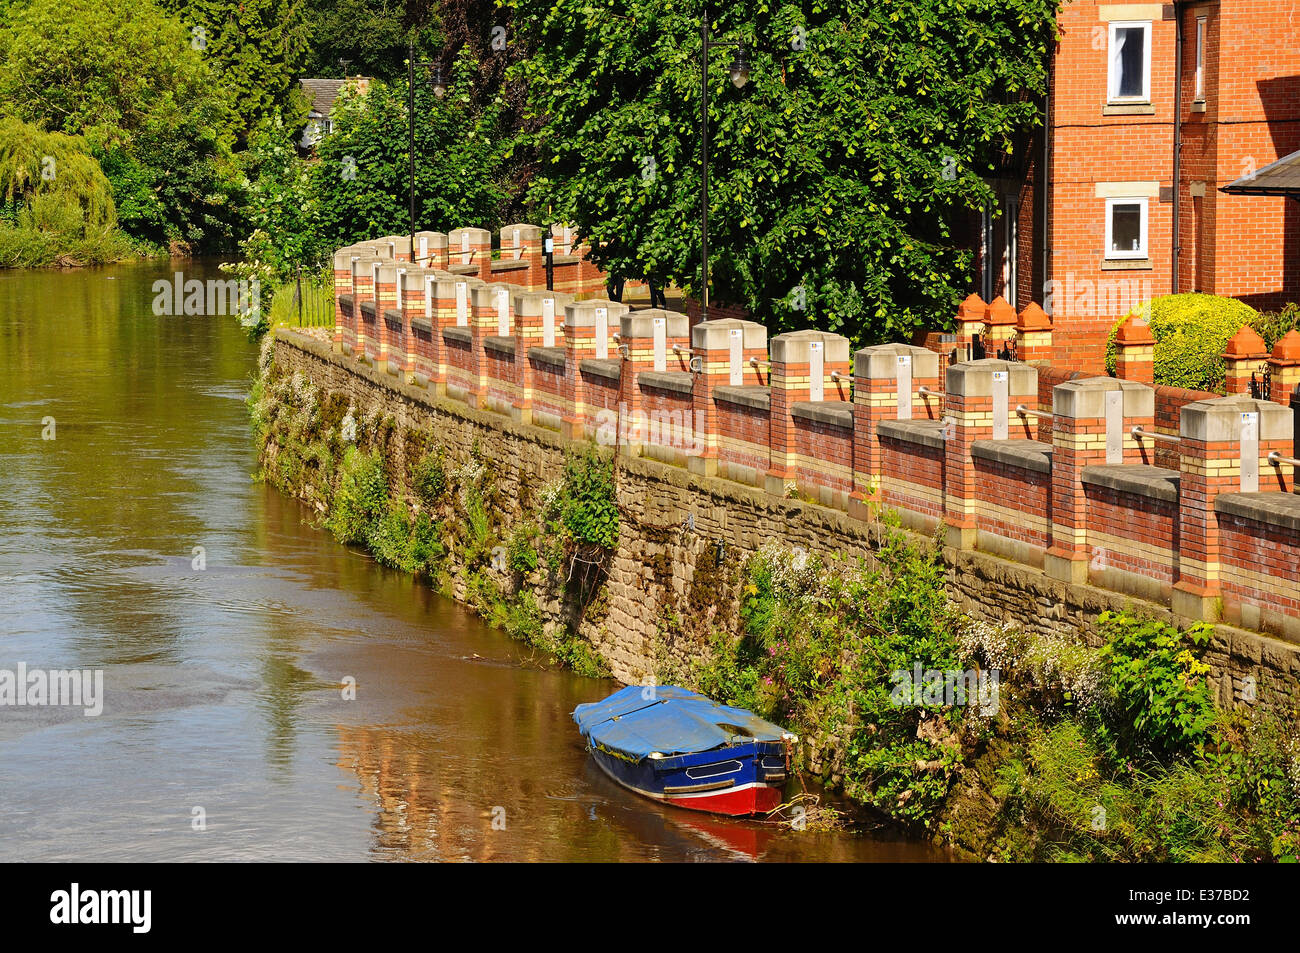 Flood defence wall barrier along the River Wye, Hereford, Herefordshire, England, UK, Western Europe. - Stock Image